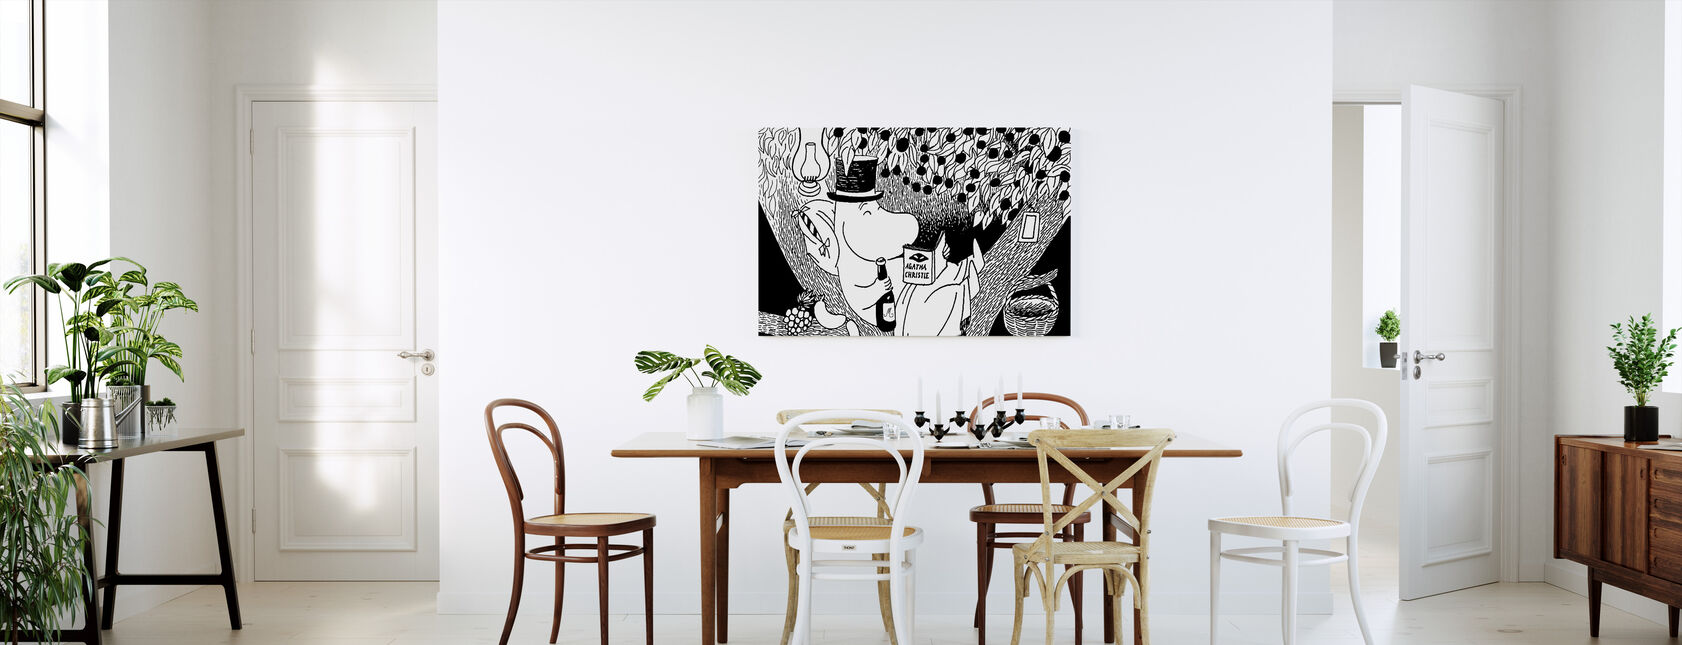 Moomin - Moominpappa Reading in a Tree - Canvas print - Kitchen